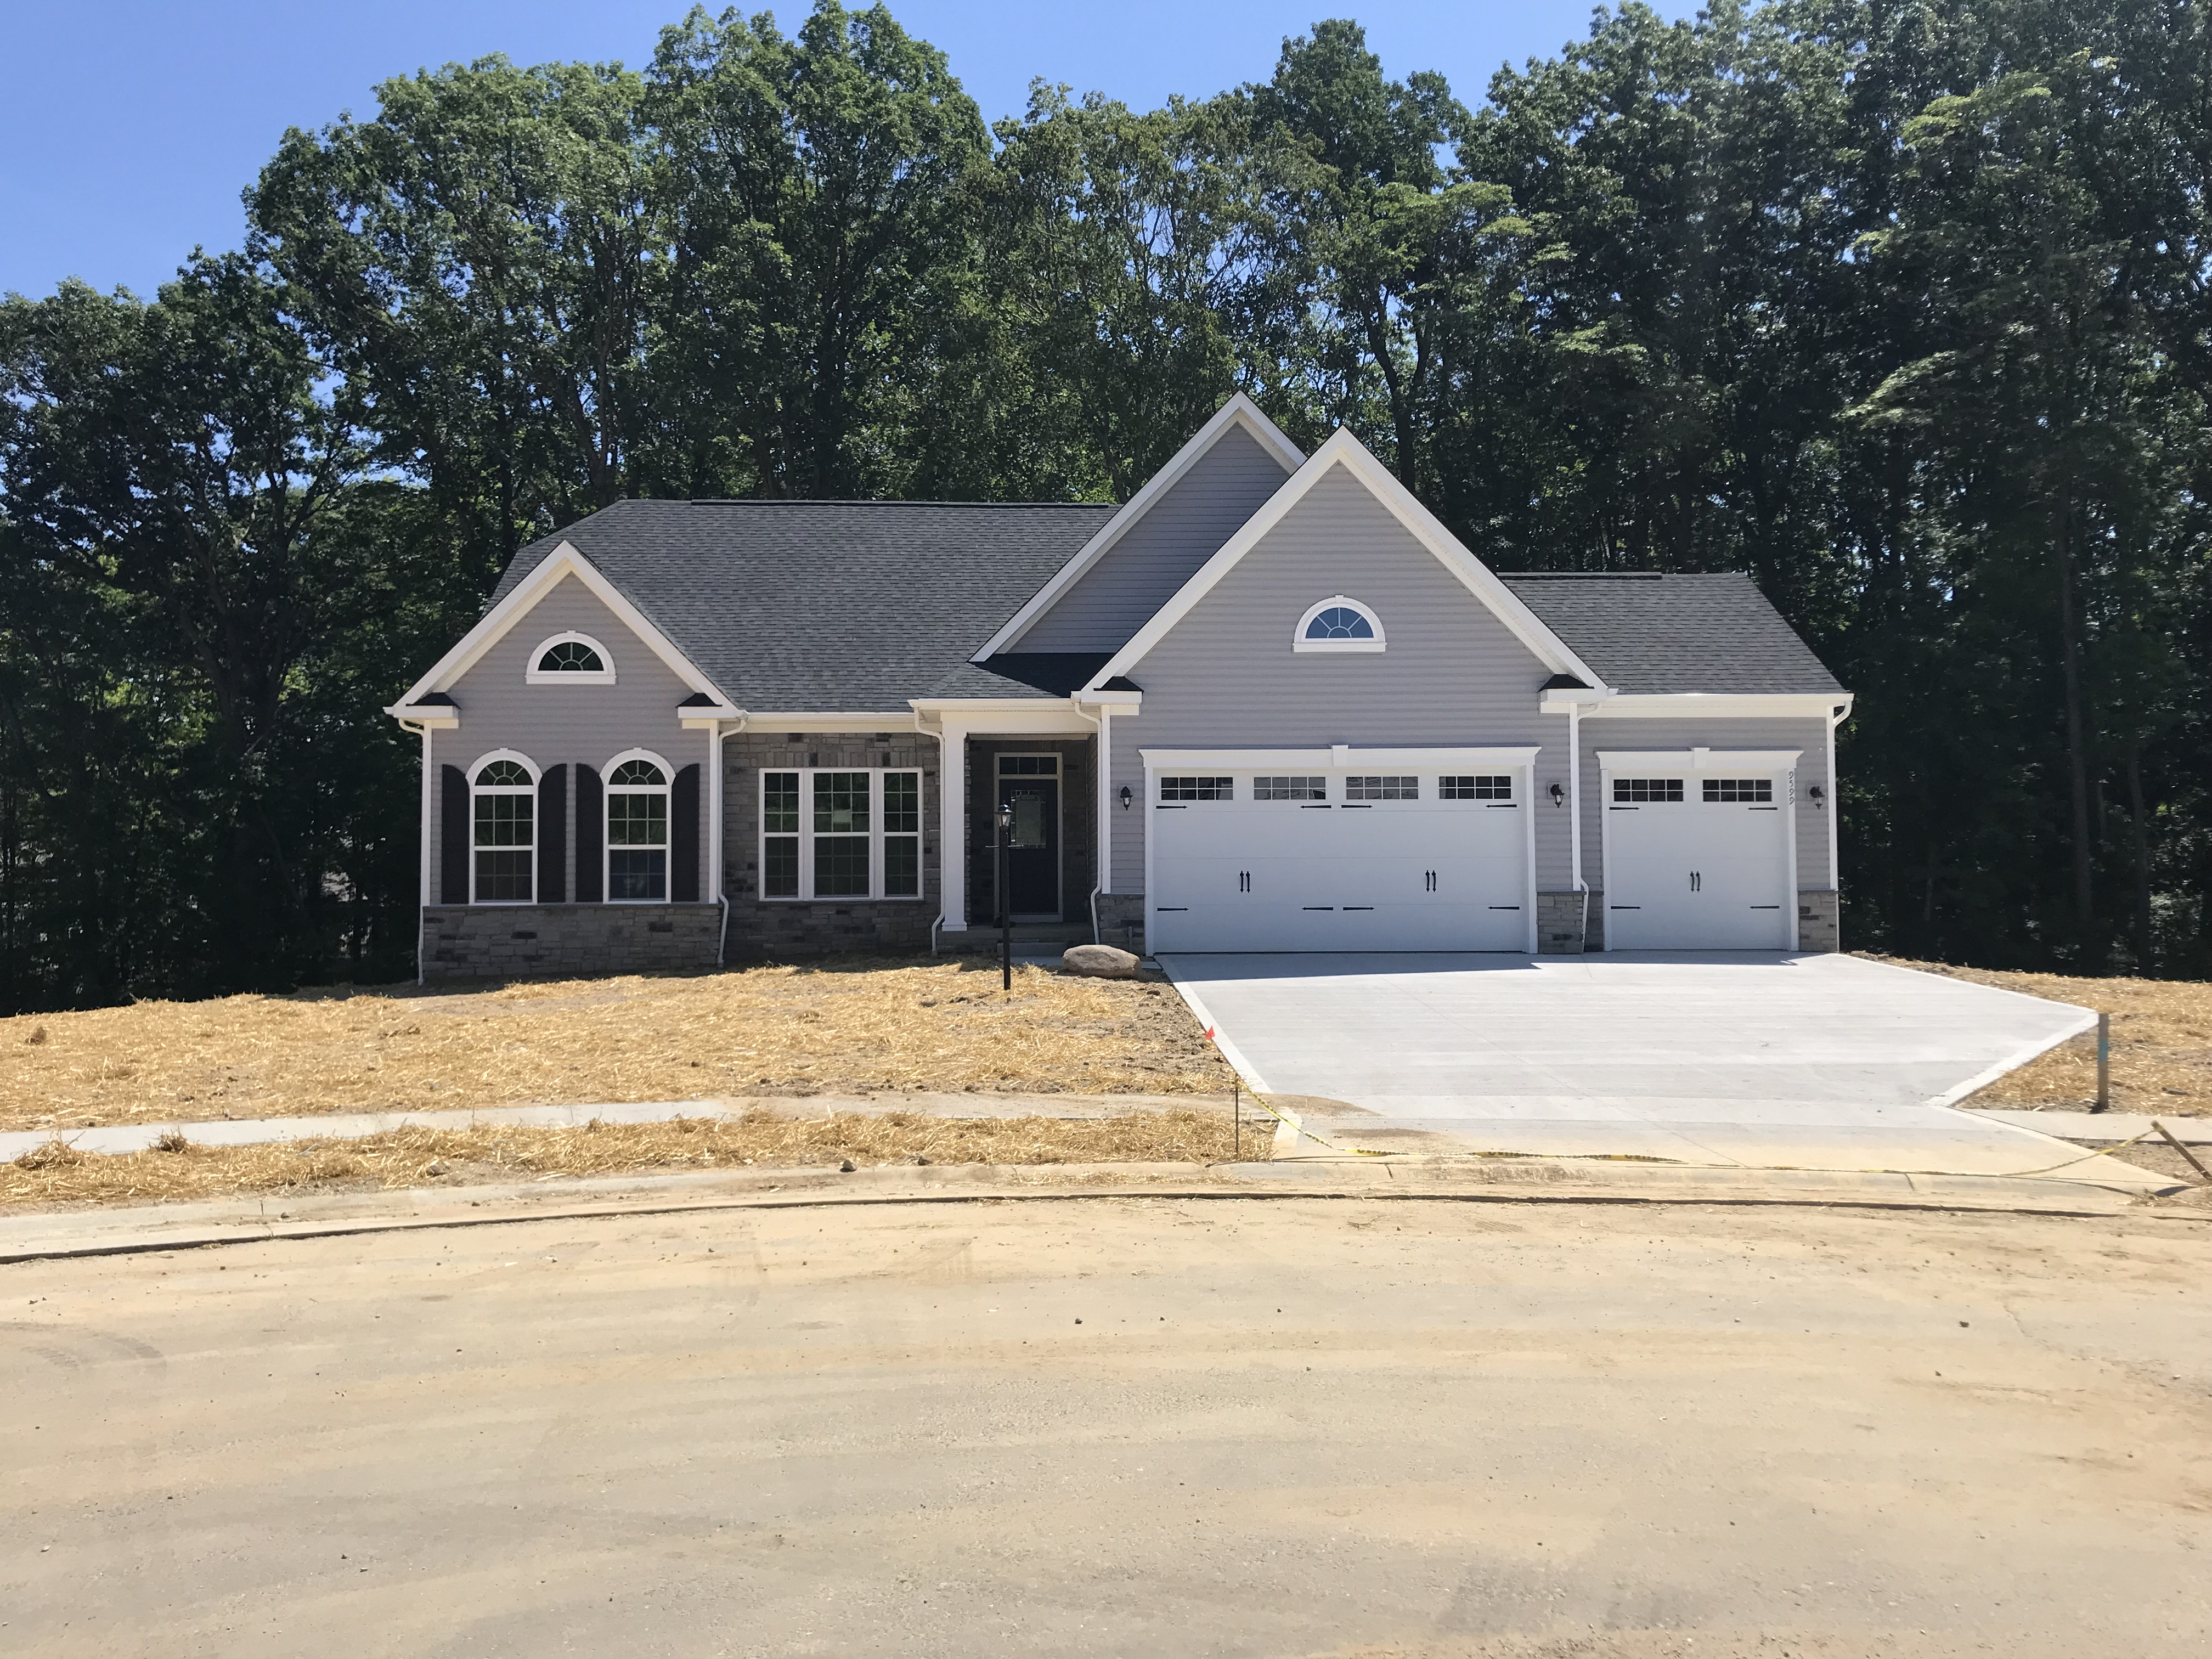 Our Ryan Homes Carolina Place The Countdown To Welcome Home